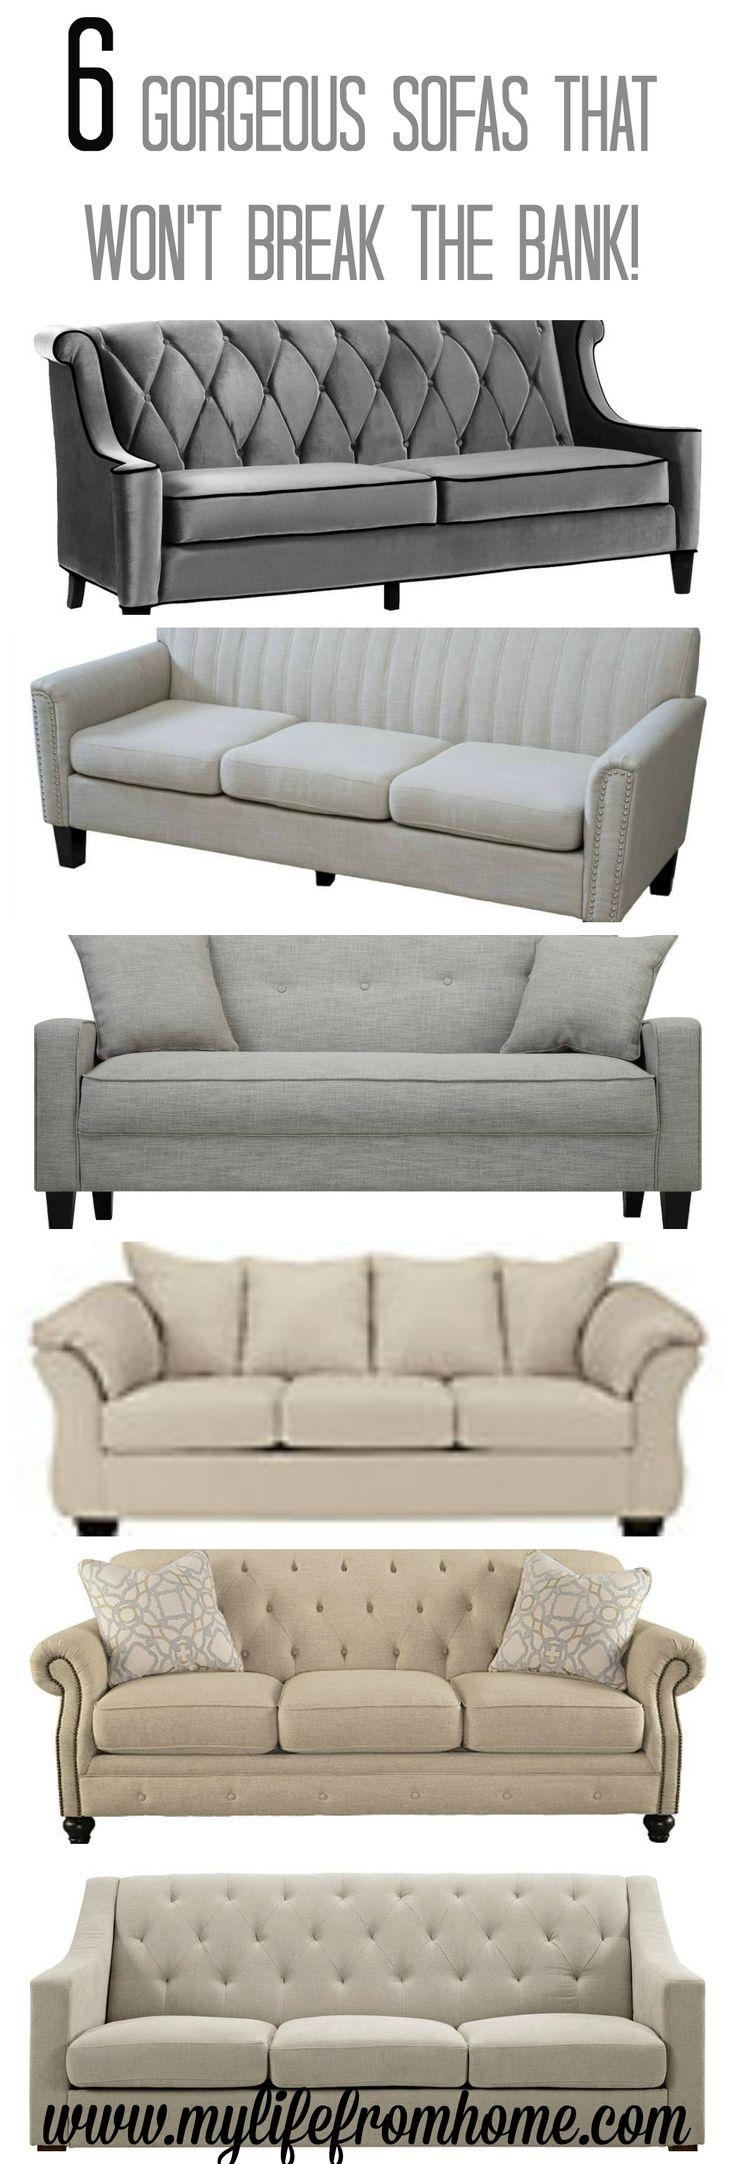 Best 10+ Country Sofas Ideas On Pinterest | Beige Waredrobes With Regard To Chintz Sofas And Chairs (View 15 of 20)